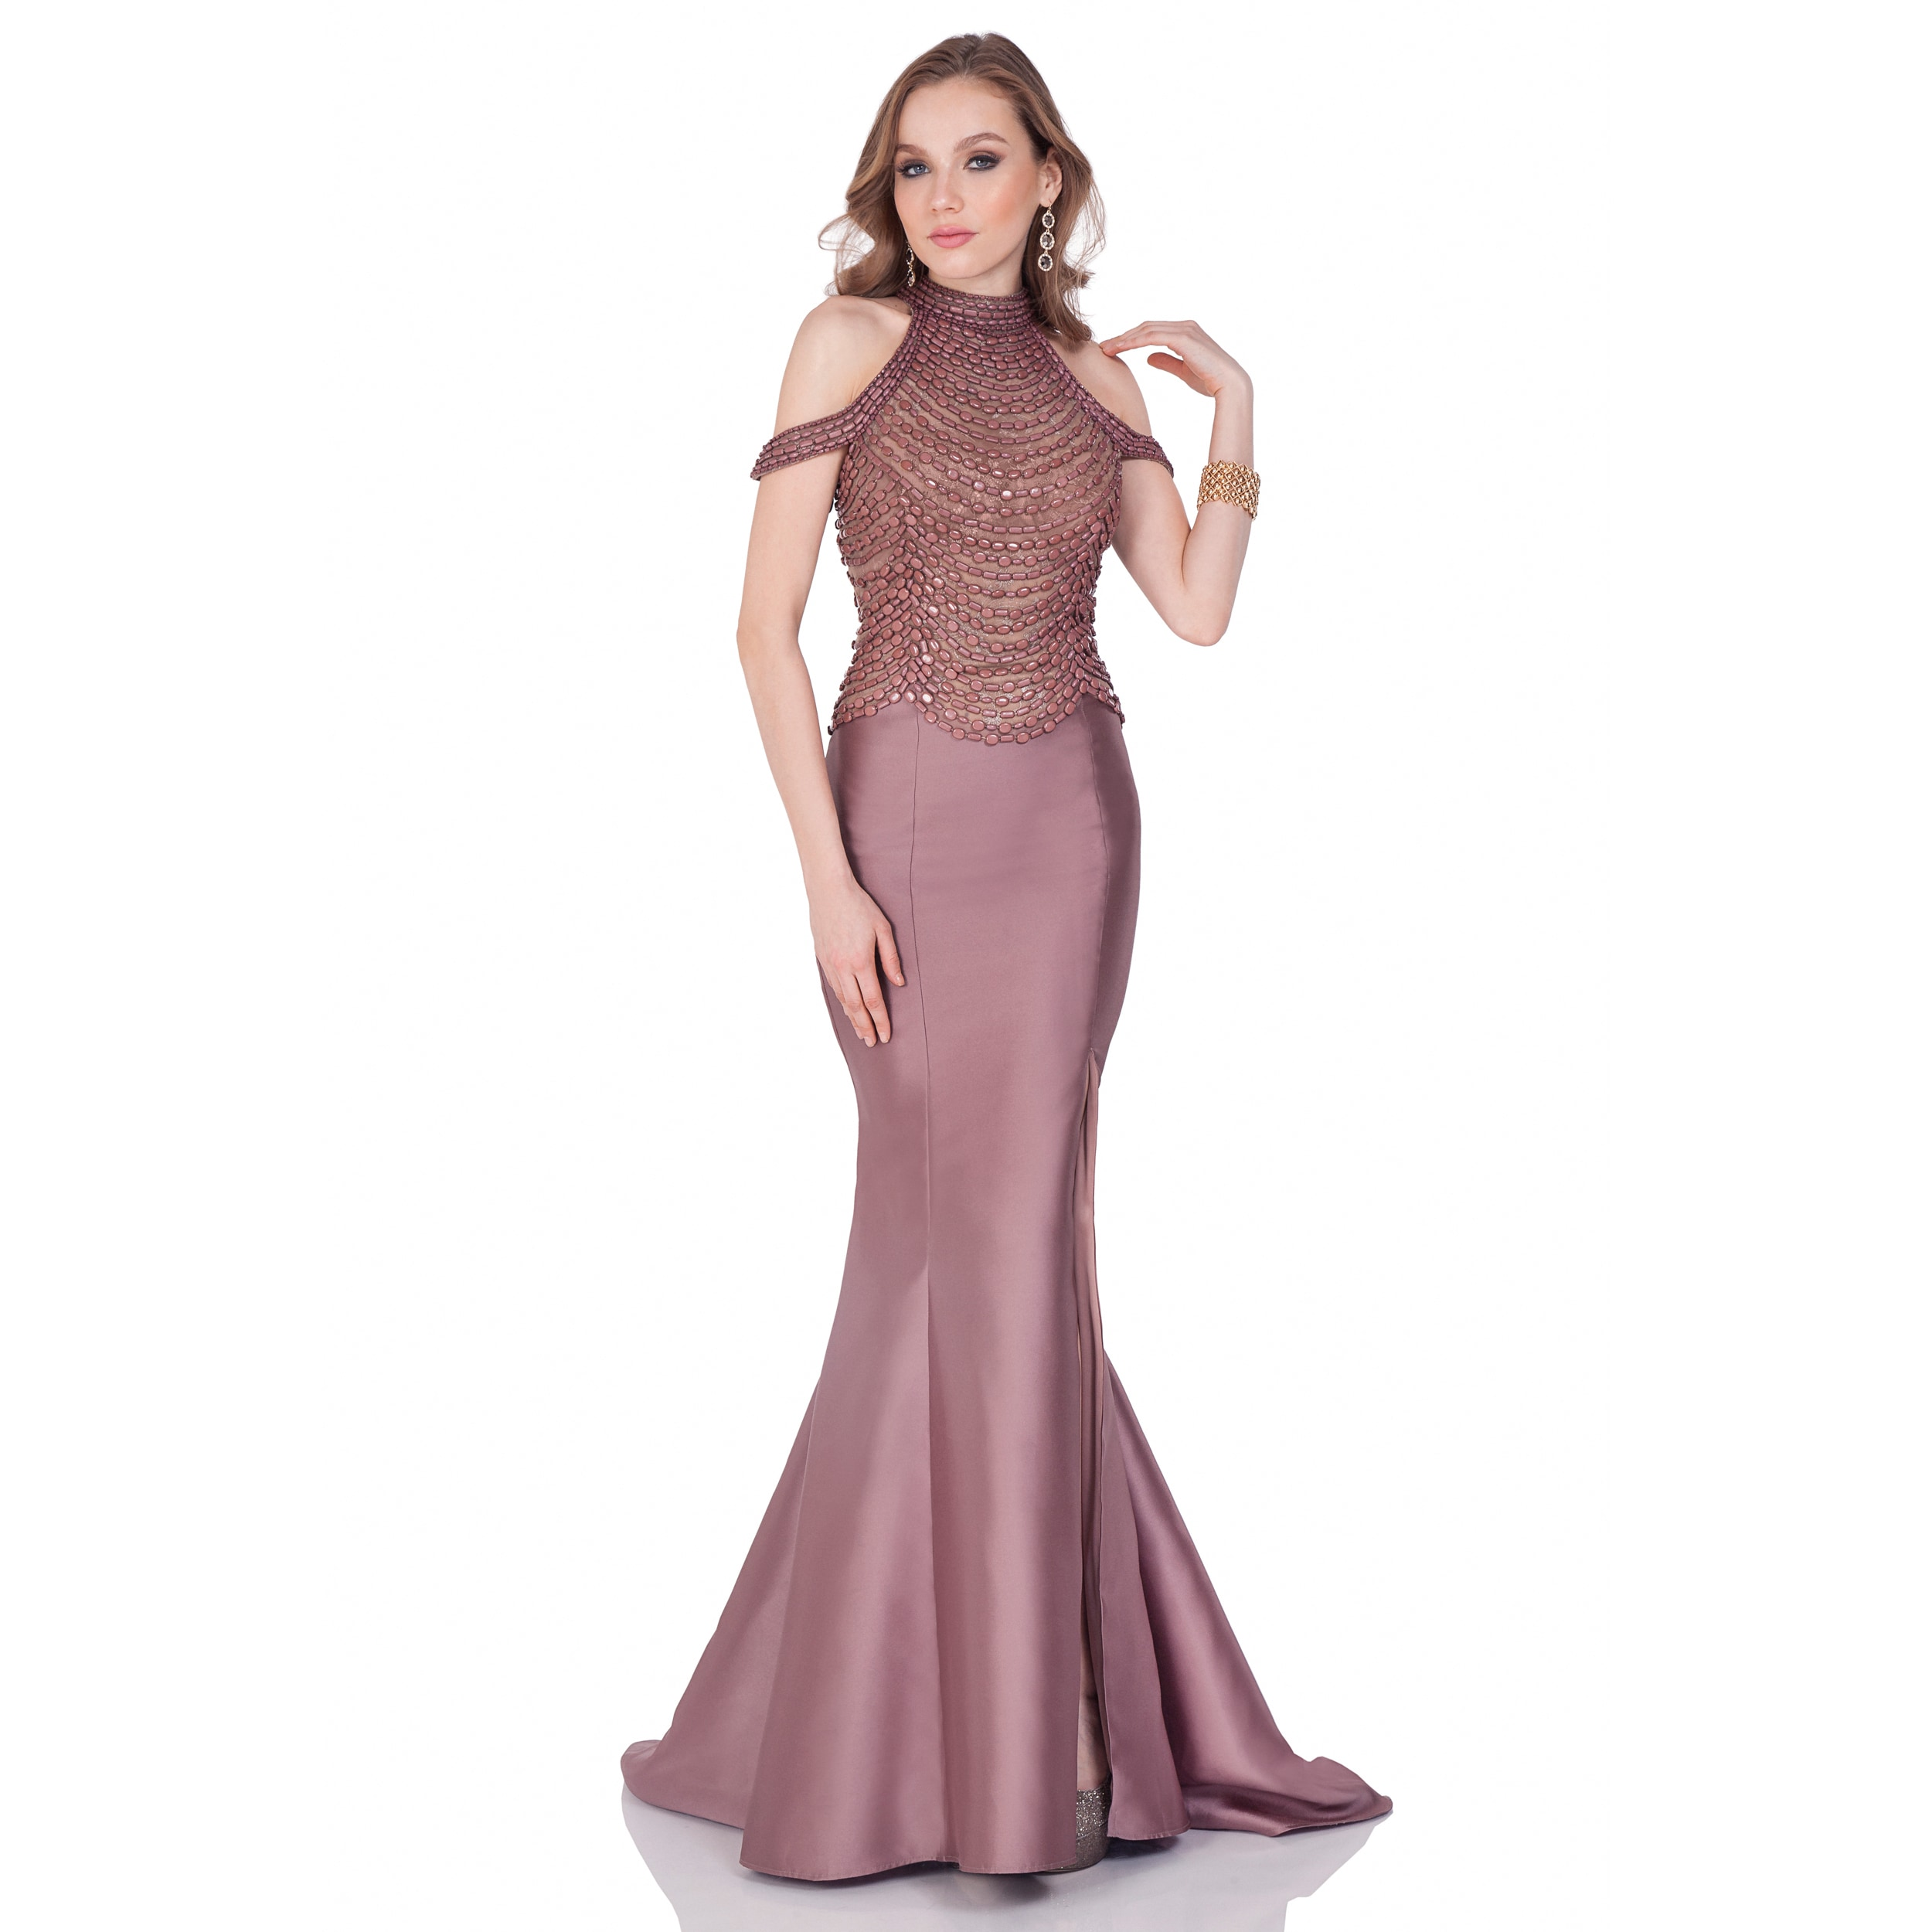 3d82196075e Shop Terani Couture Women s Mikado Floor-length Mother-of-the-bride Dress - Free  Shipping Today - Overstock - 15126712